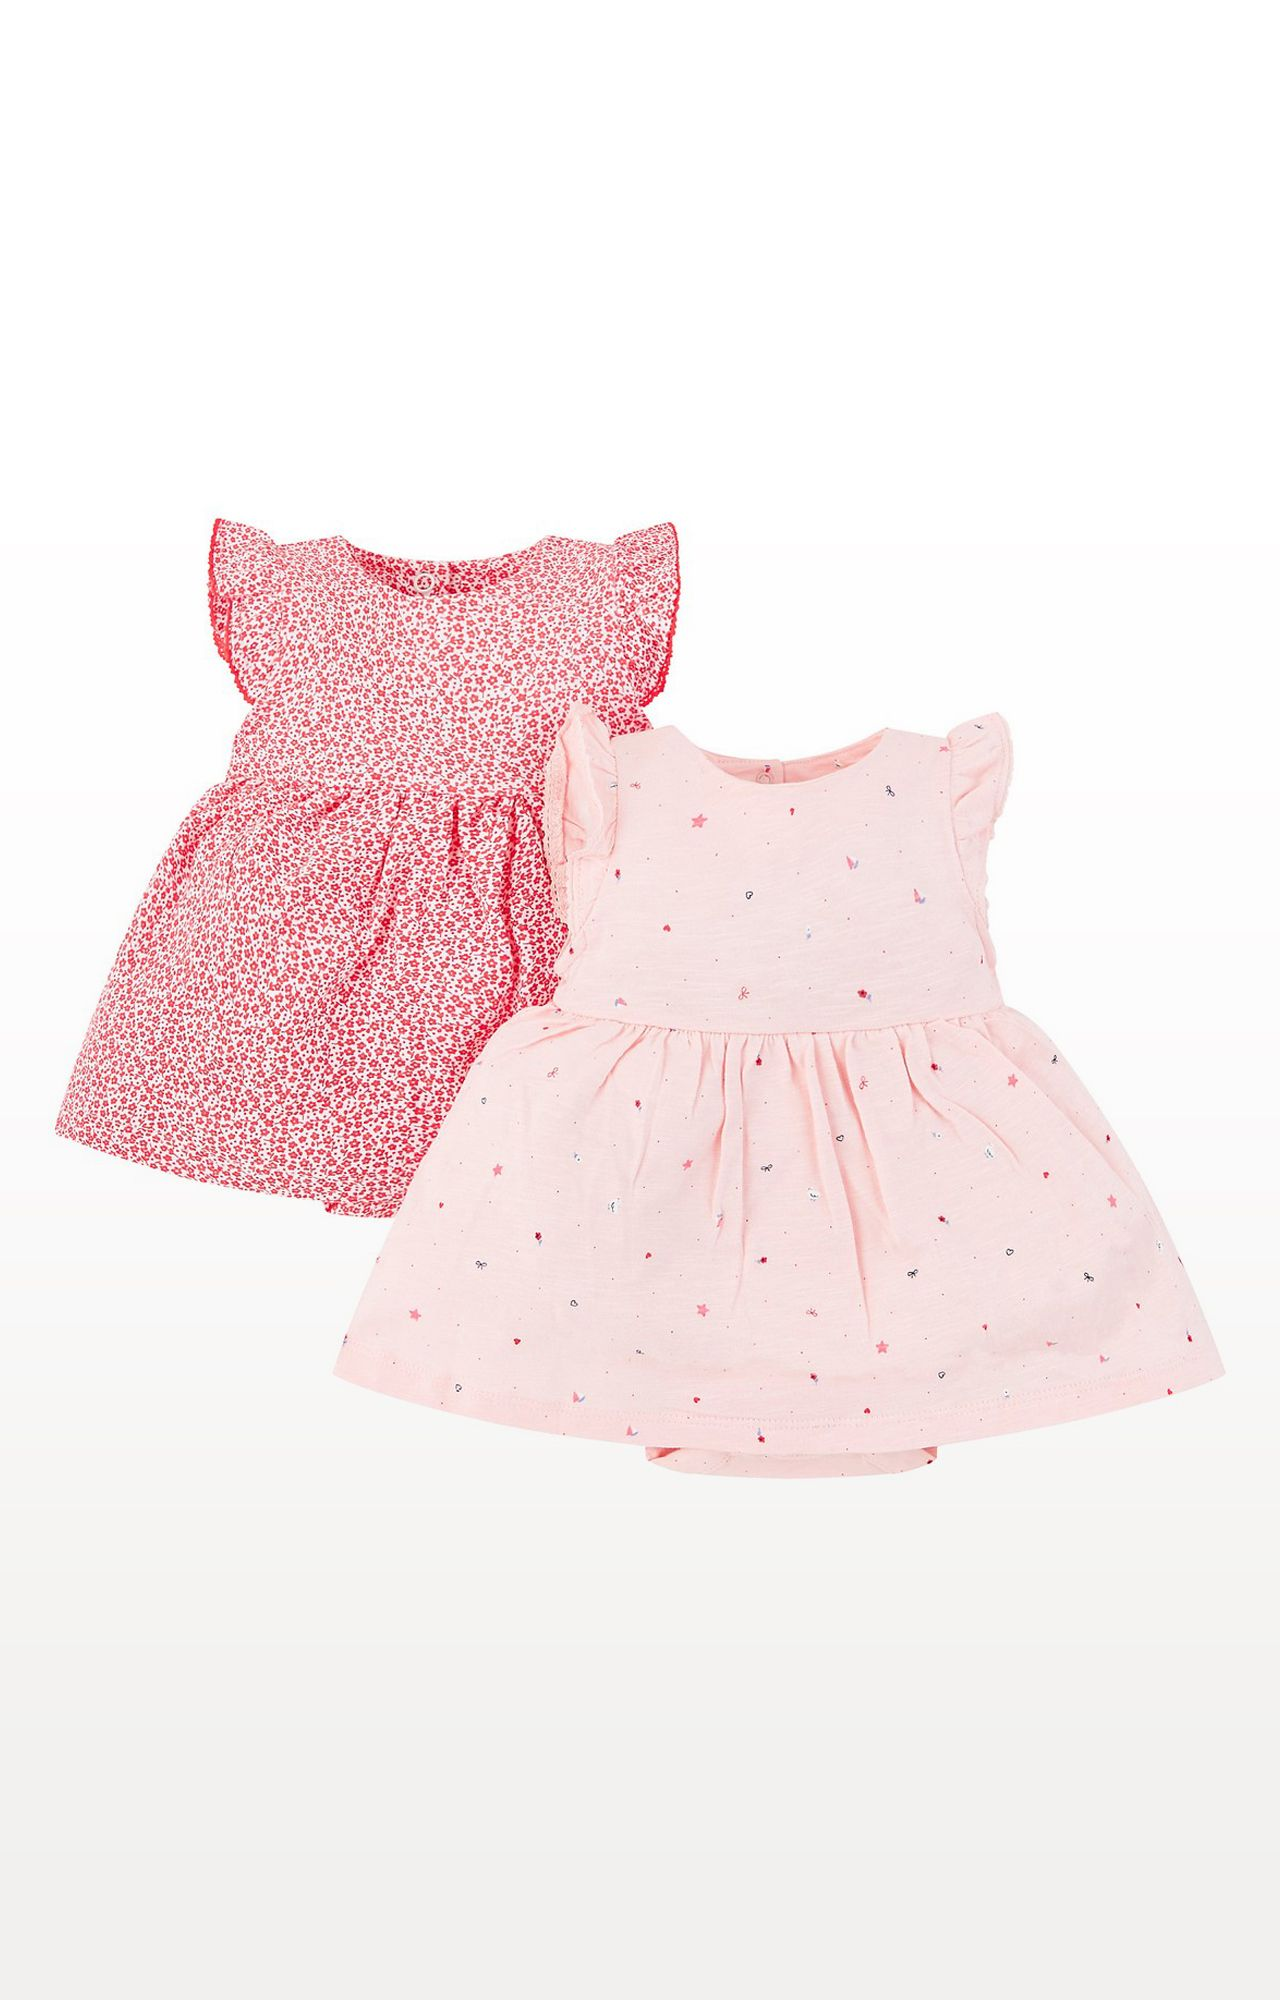 Mothercare | Pink Printed Floral and Seaside Romper Dresses - Pack of 2